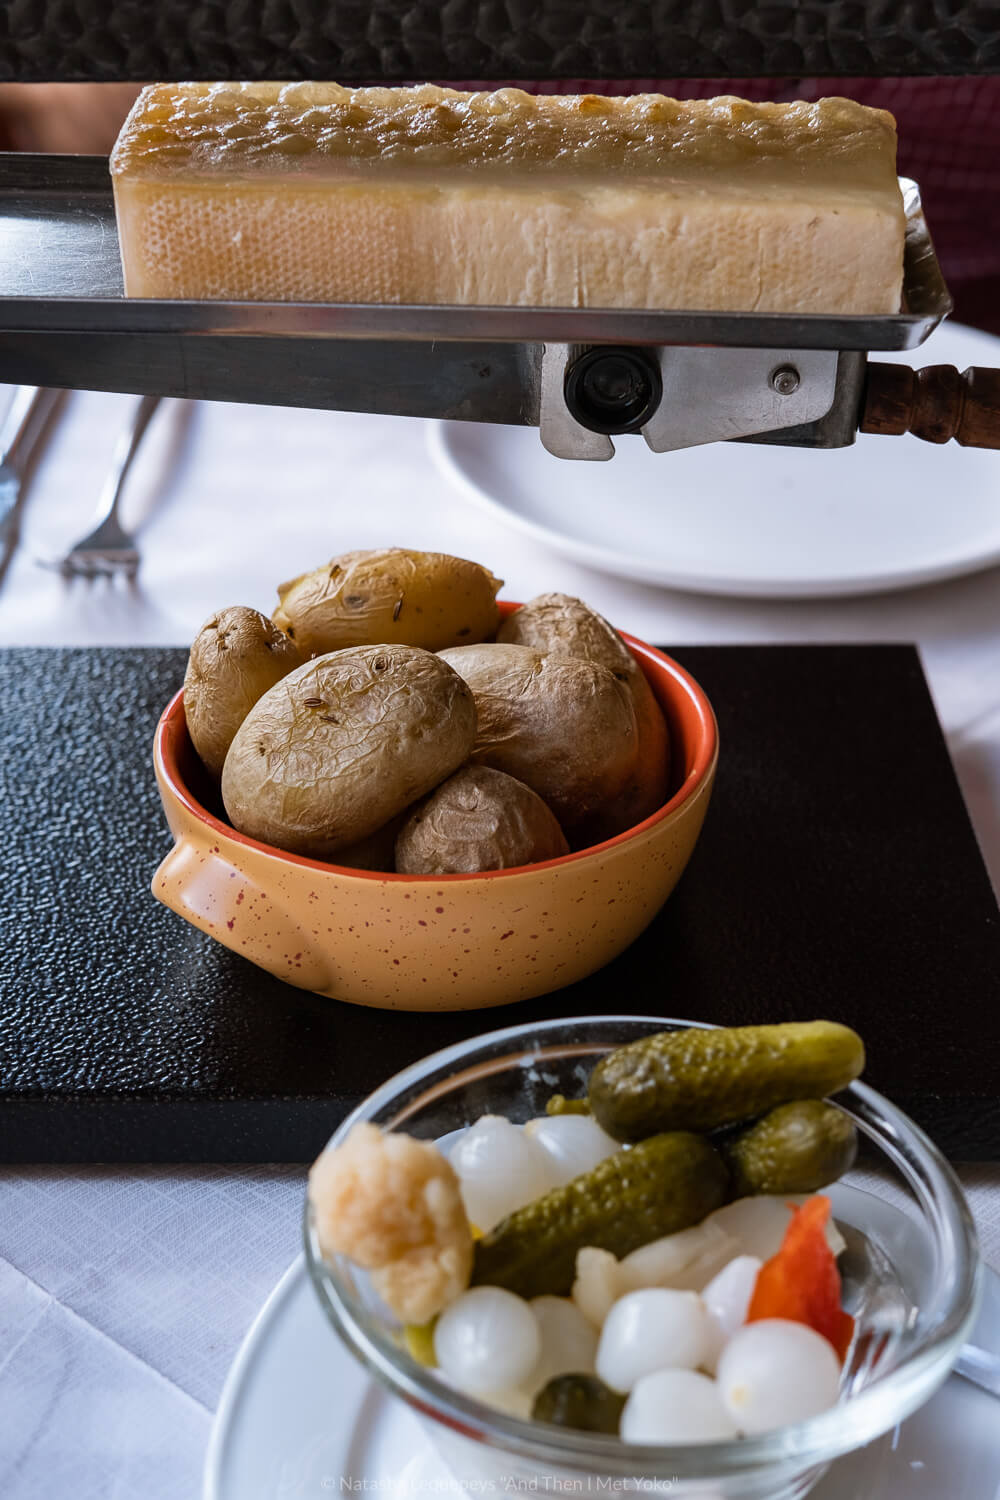 """Raclette at Restaurant Tavern, Hotel Bernerhof in Wengen, Switzerland. Travel photography and guide by © Natasha Lequepeys for """"And Then I Met Yoko"""". #wengen #switzerland #jungfrau #travelphotography"""